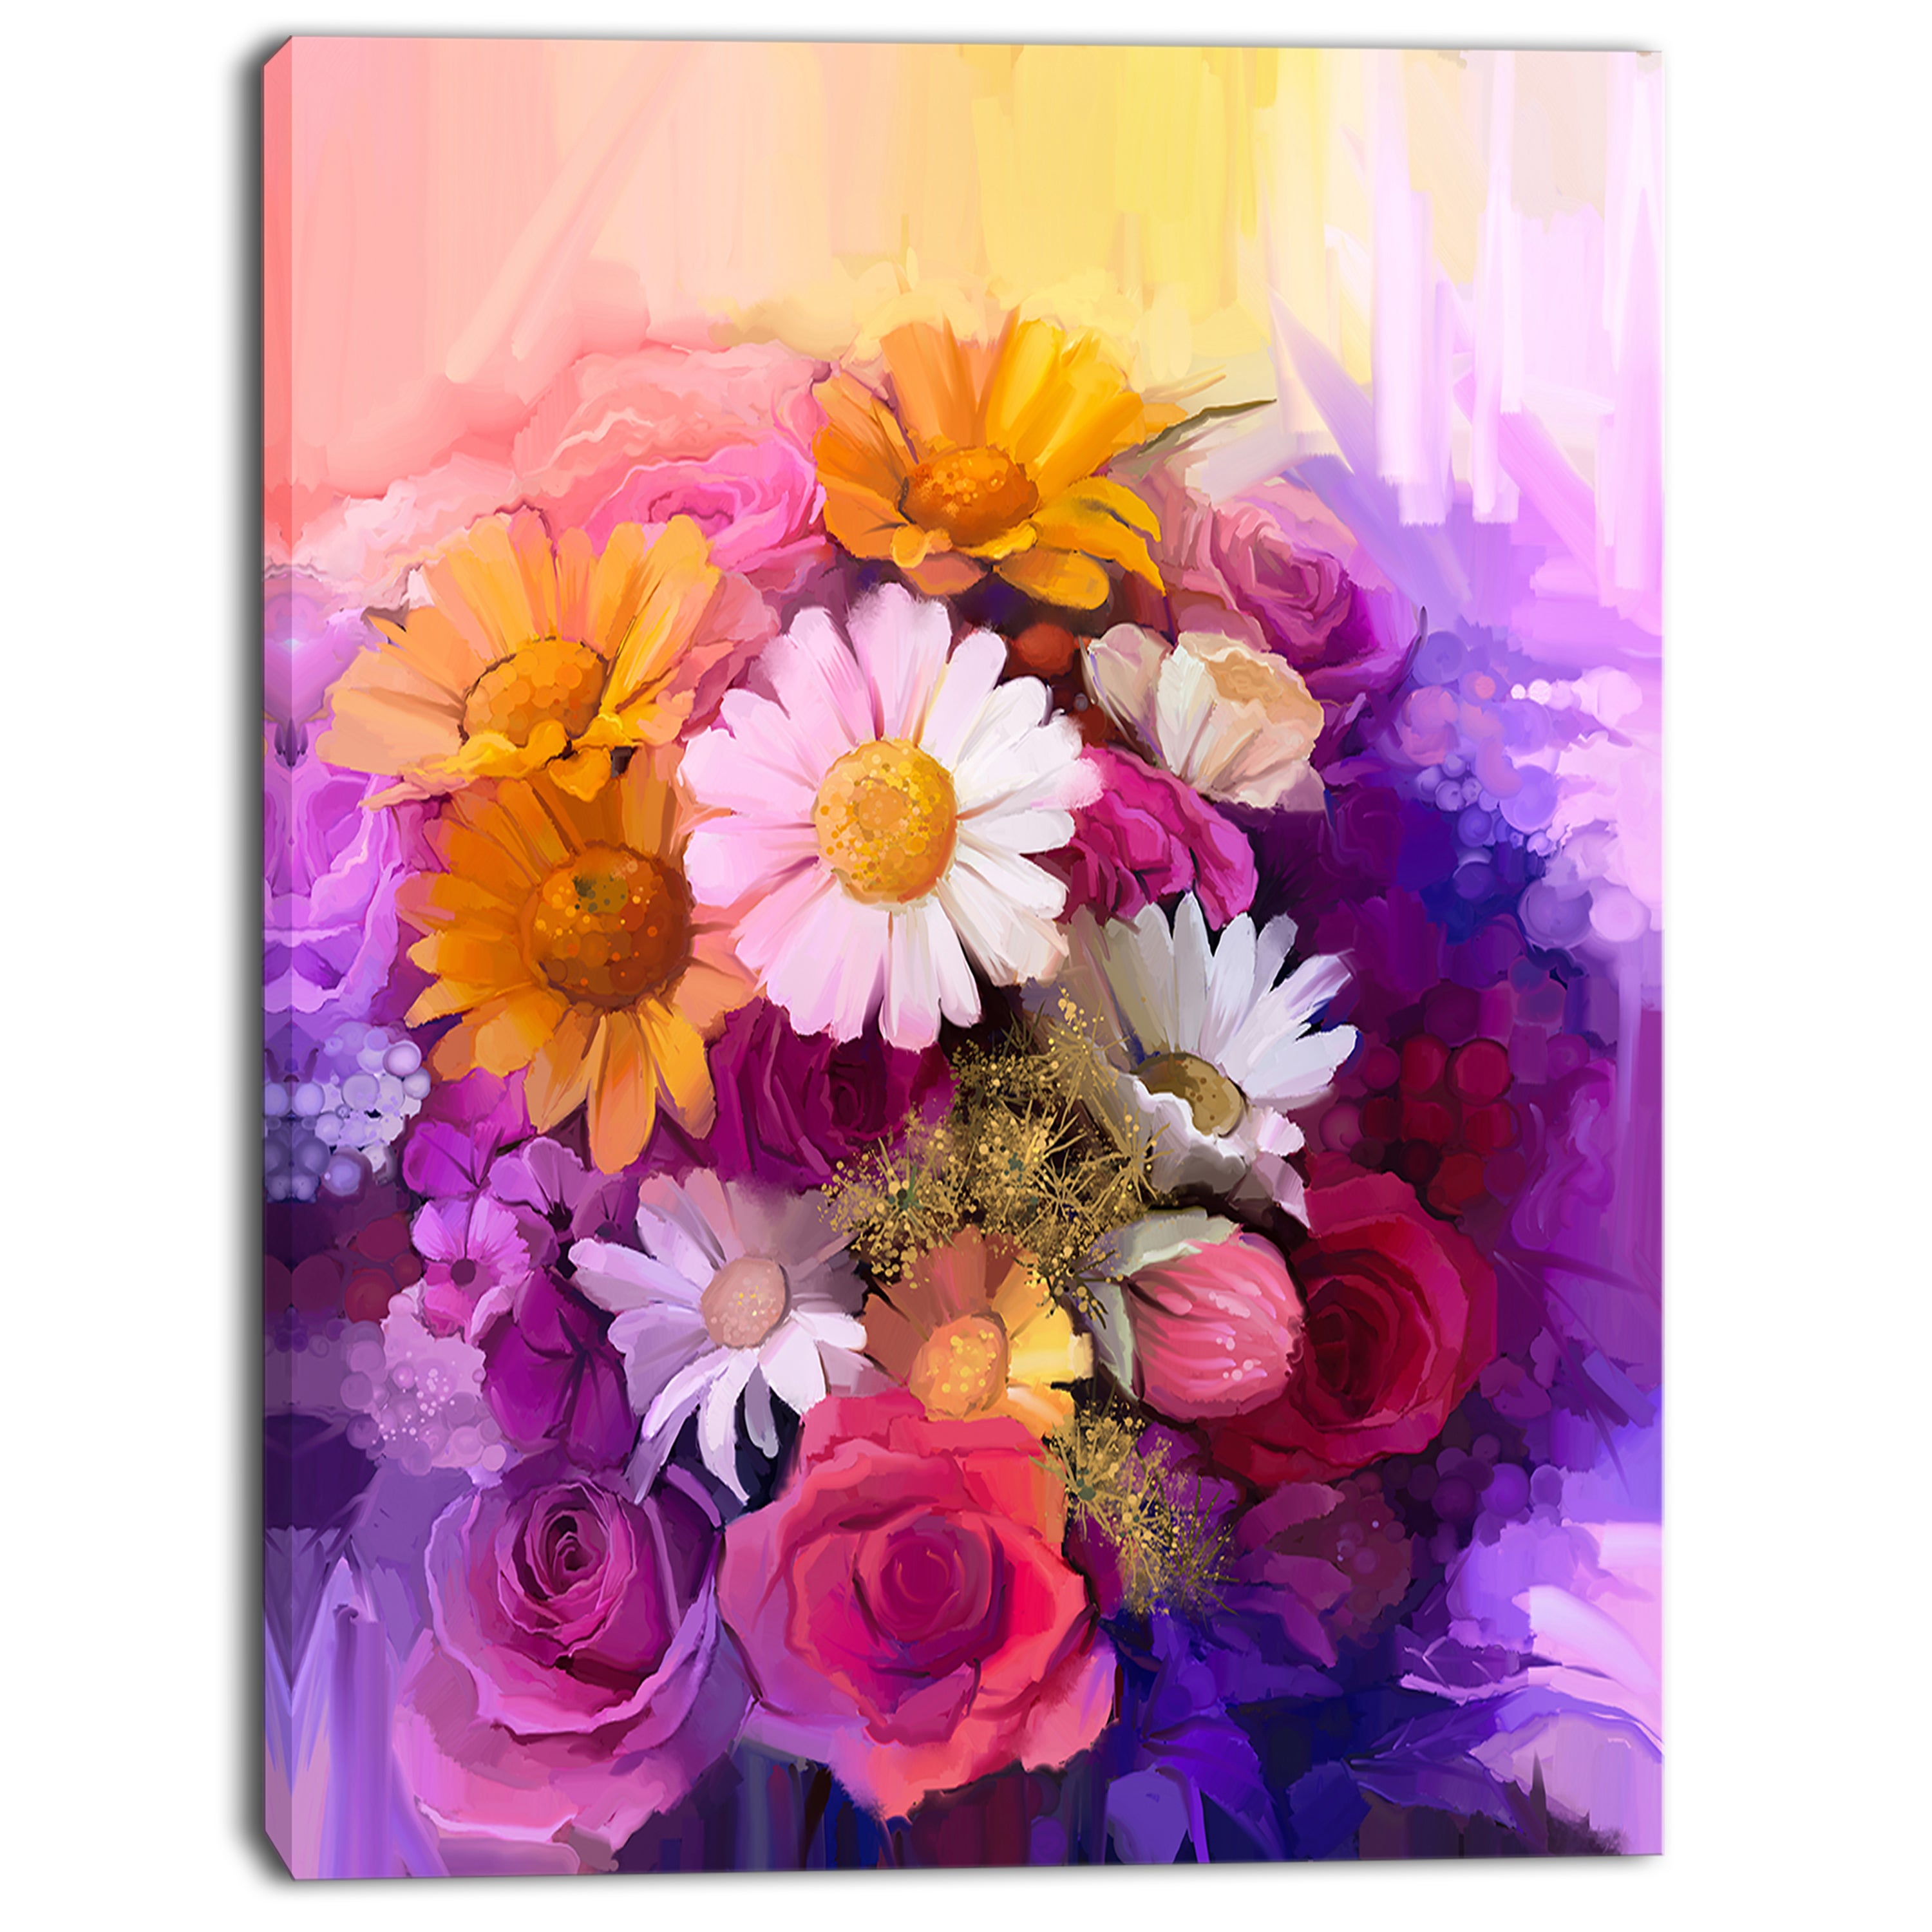 Designart colorful bouquet of different flowers flower canvas designart colorful bouquet of different flowers flower canvas print artwork purple free shipping on orders over 45 overstock 19900935 izmirmasajfo